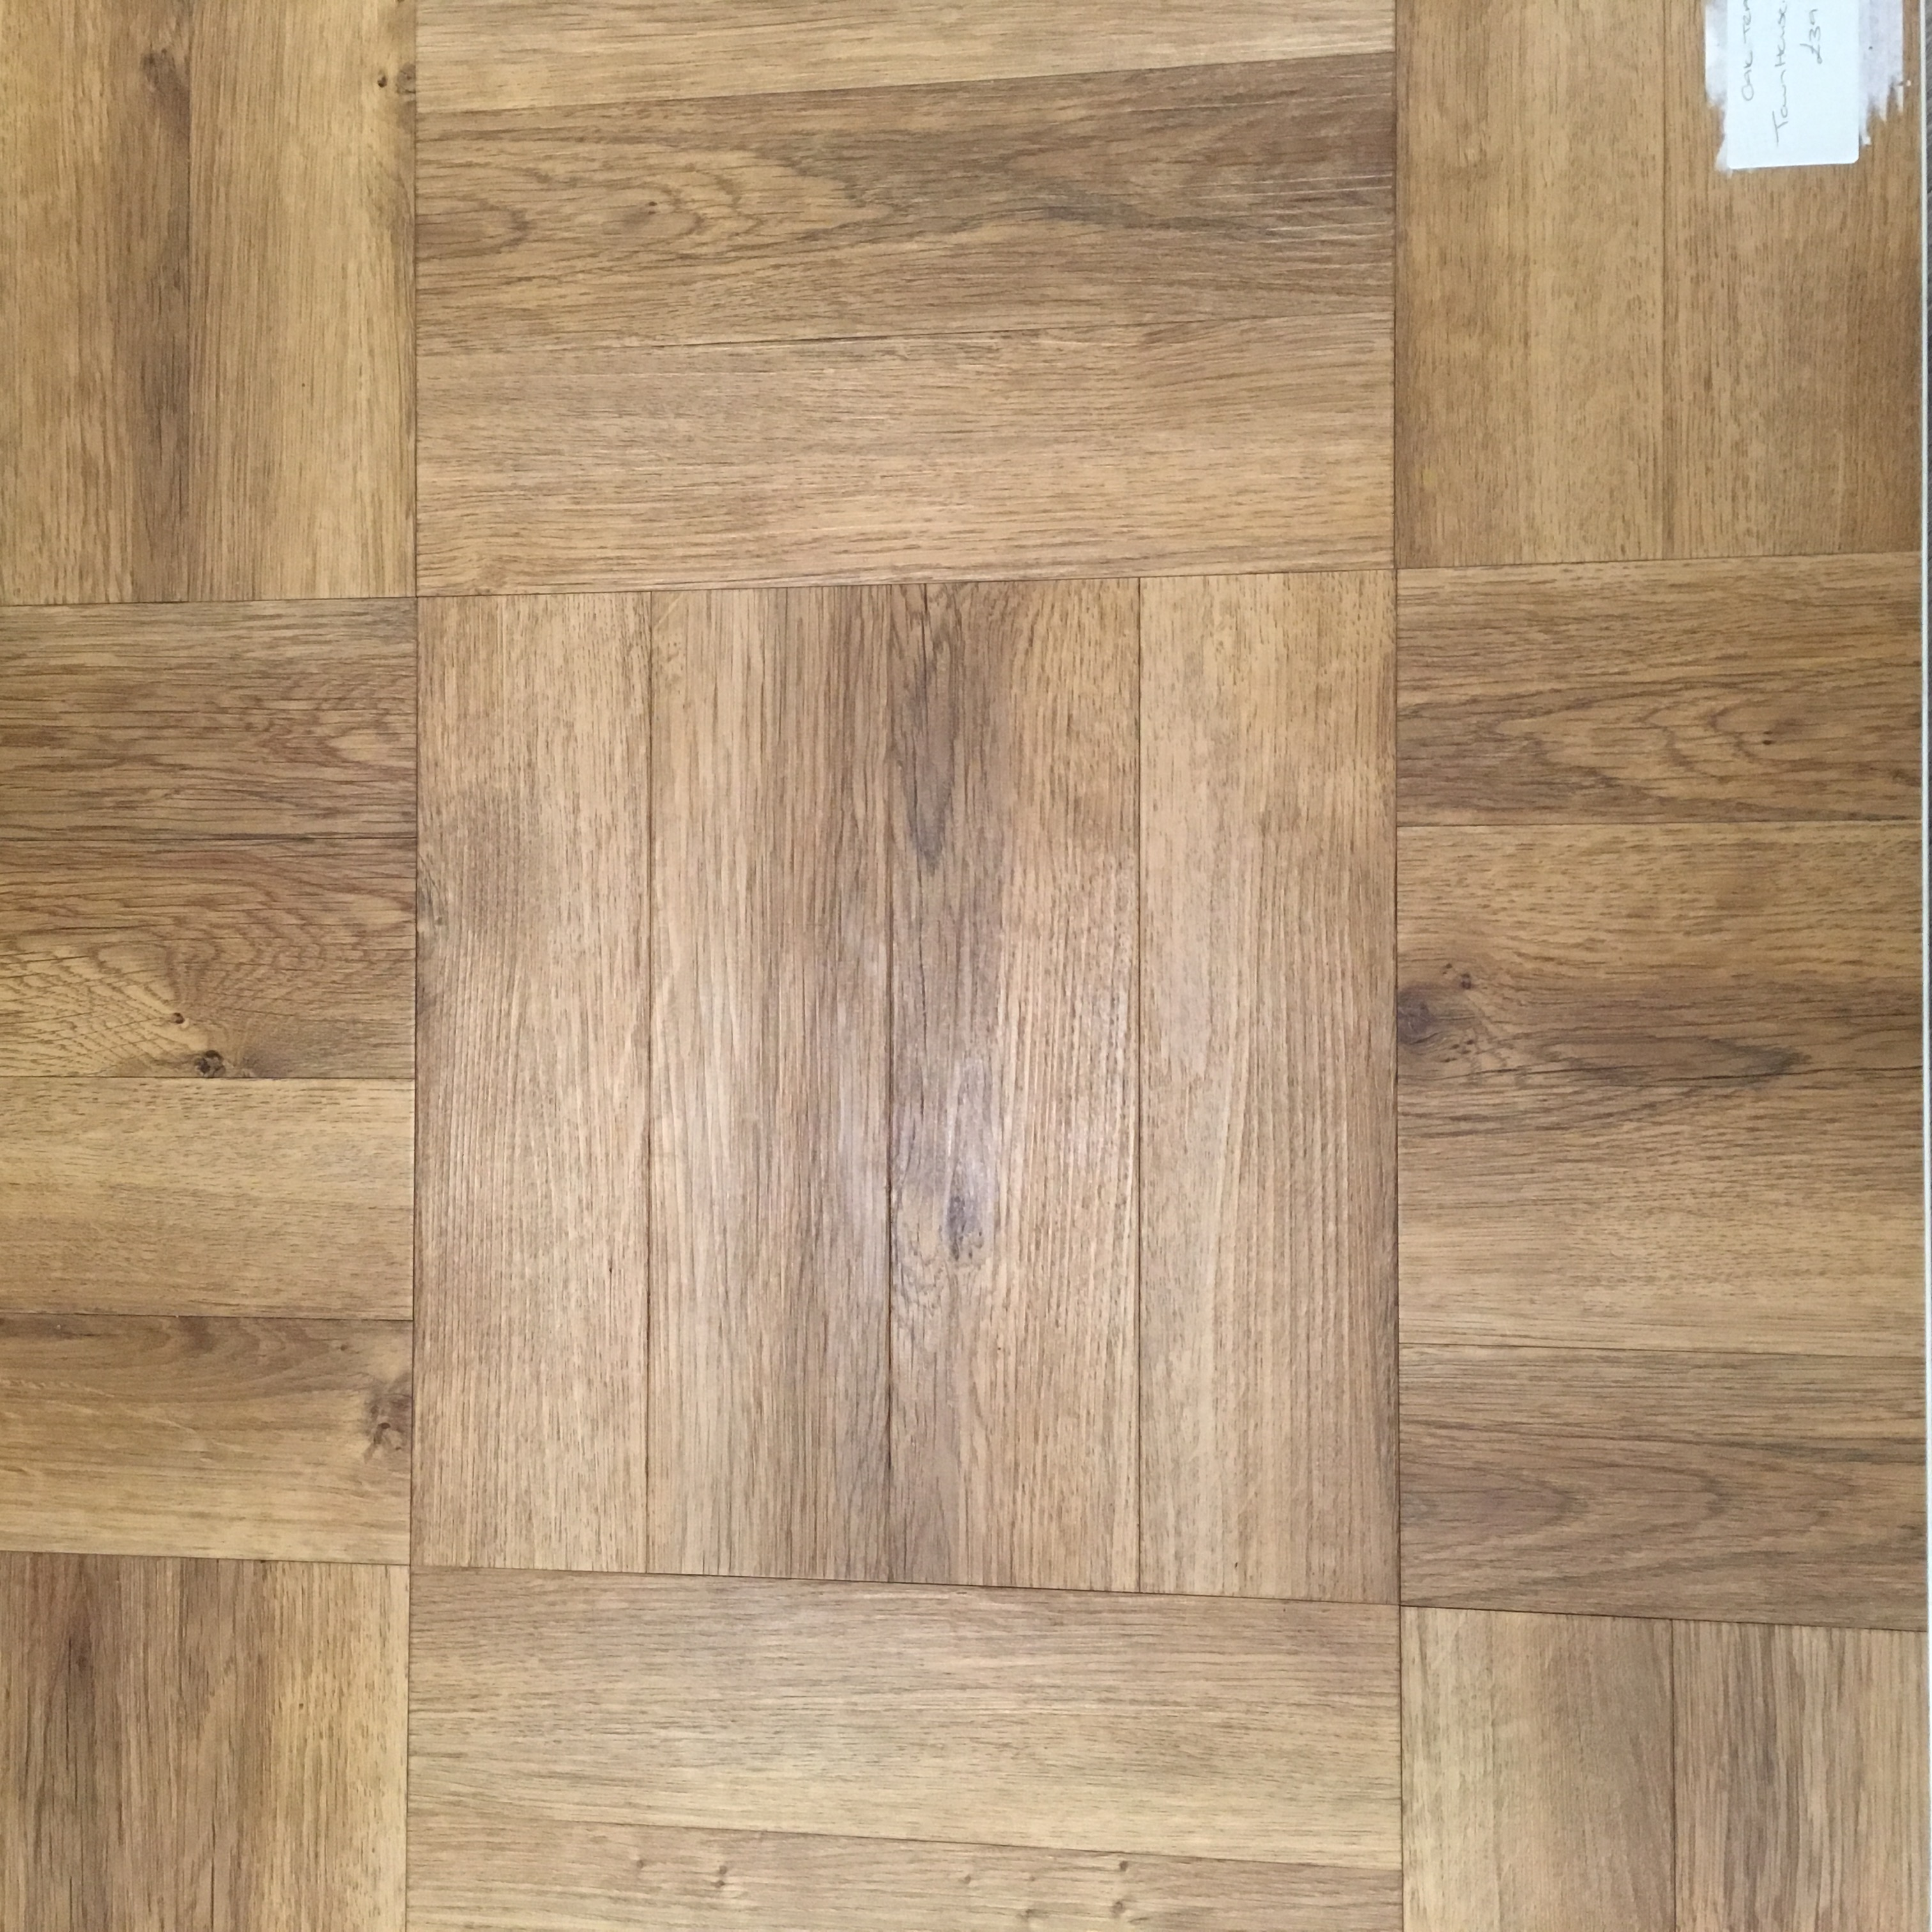 carpet-fit-wales-cynon-valley-aberdare-south-aberaman-experienced-skilled-great-customer-service-flooring-OFFER-vusta-herringbone-oak-tradition